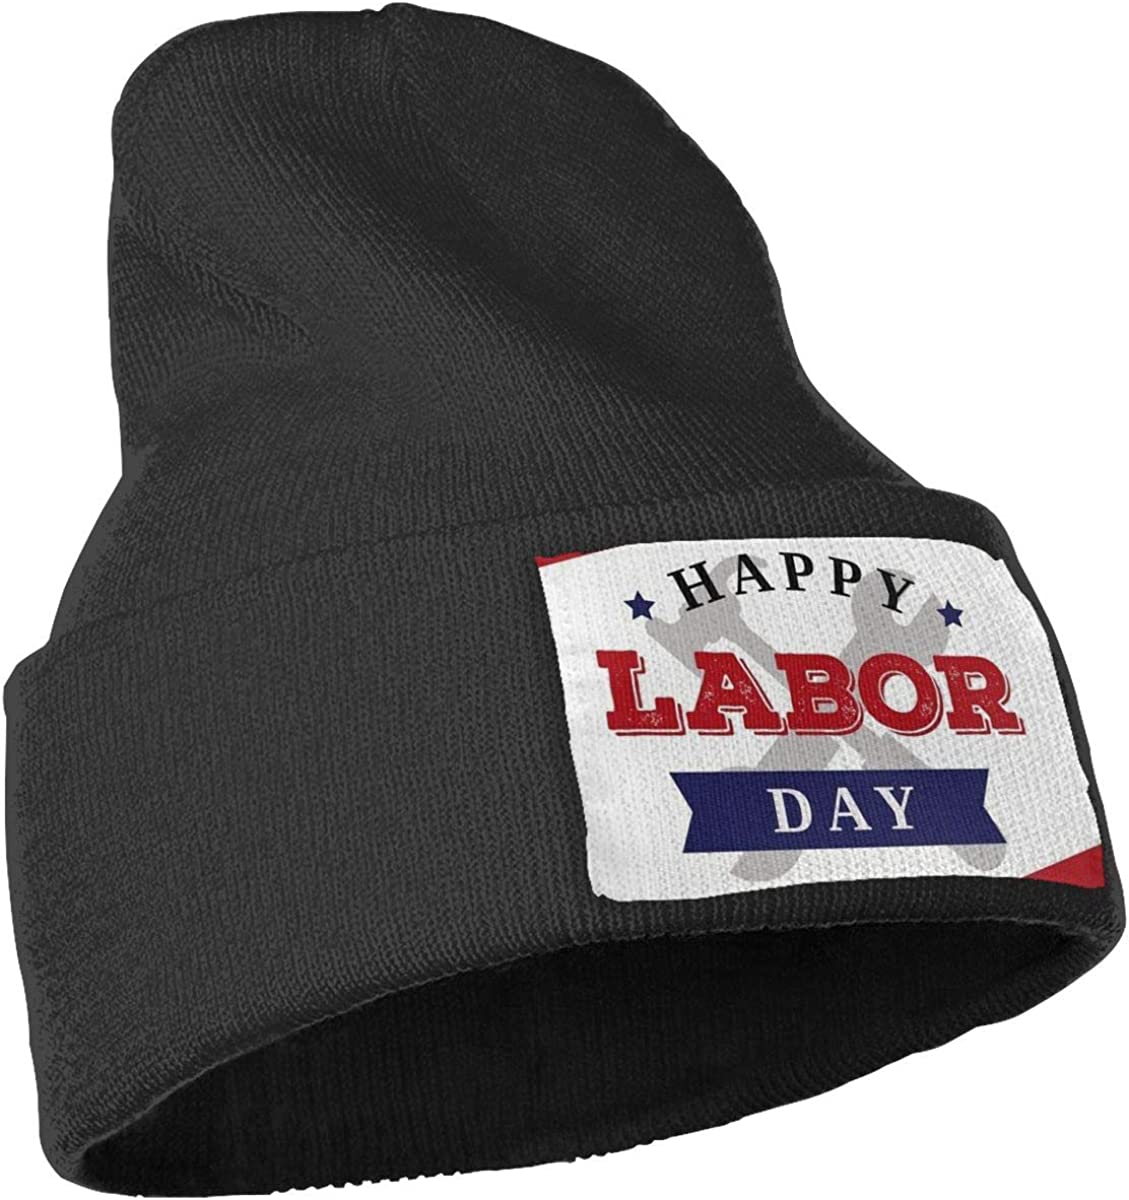 Labor Day Tools and Flag Skull Cap Men /& Women Knitting Hats Stretchy /& Soft Beanie